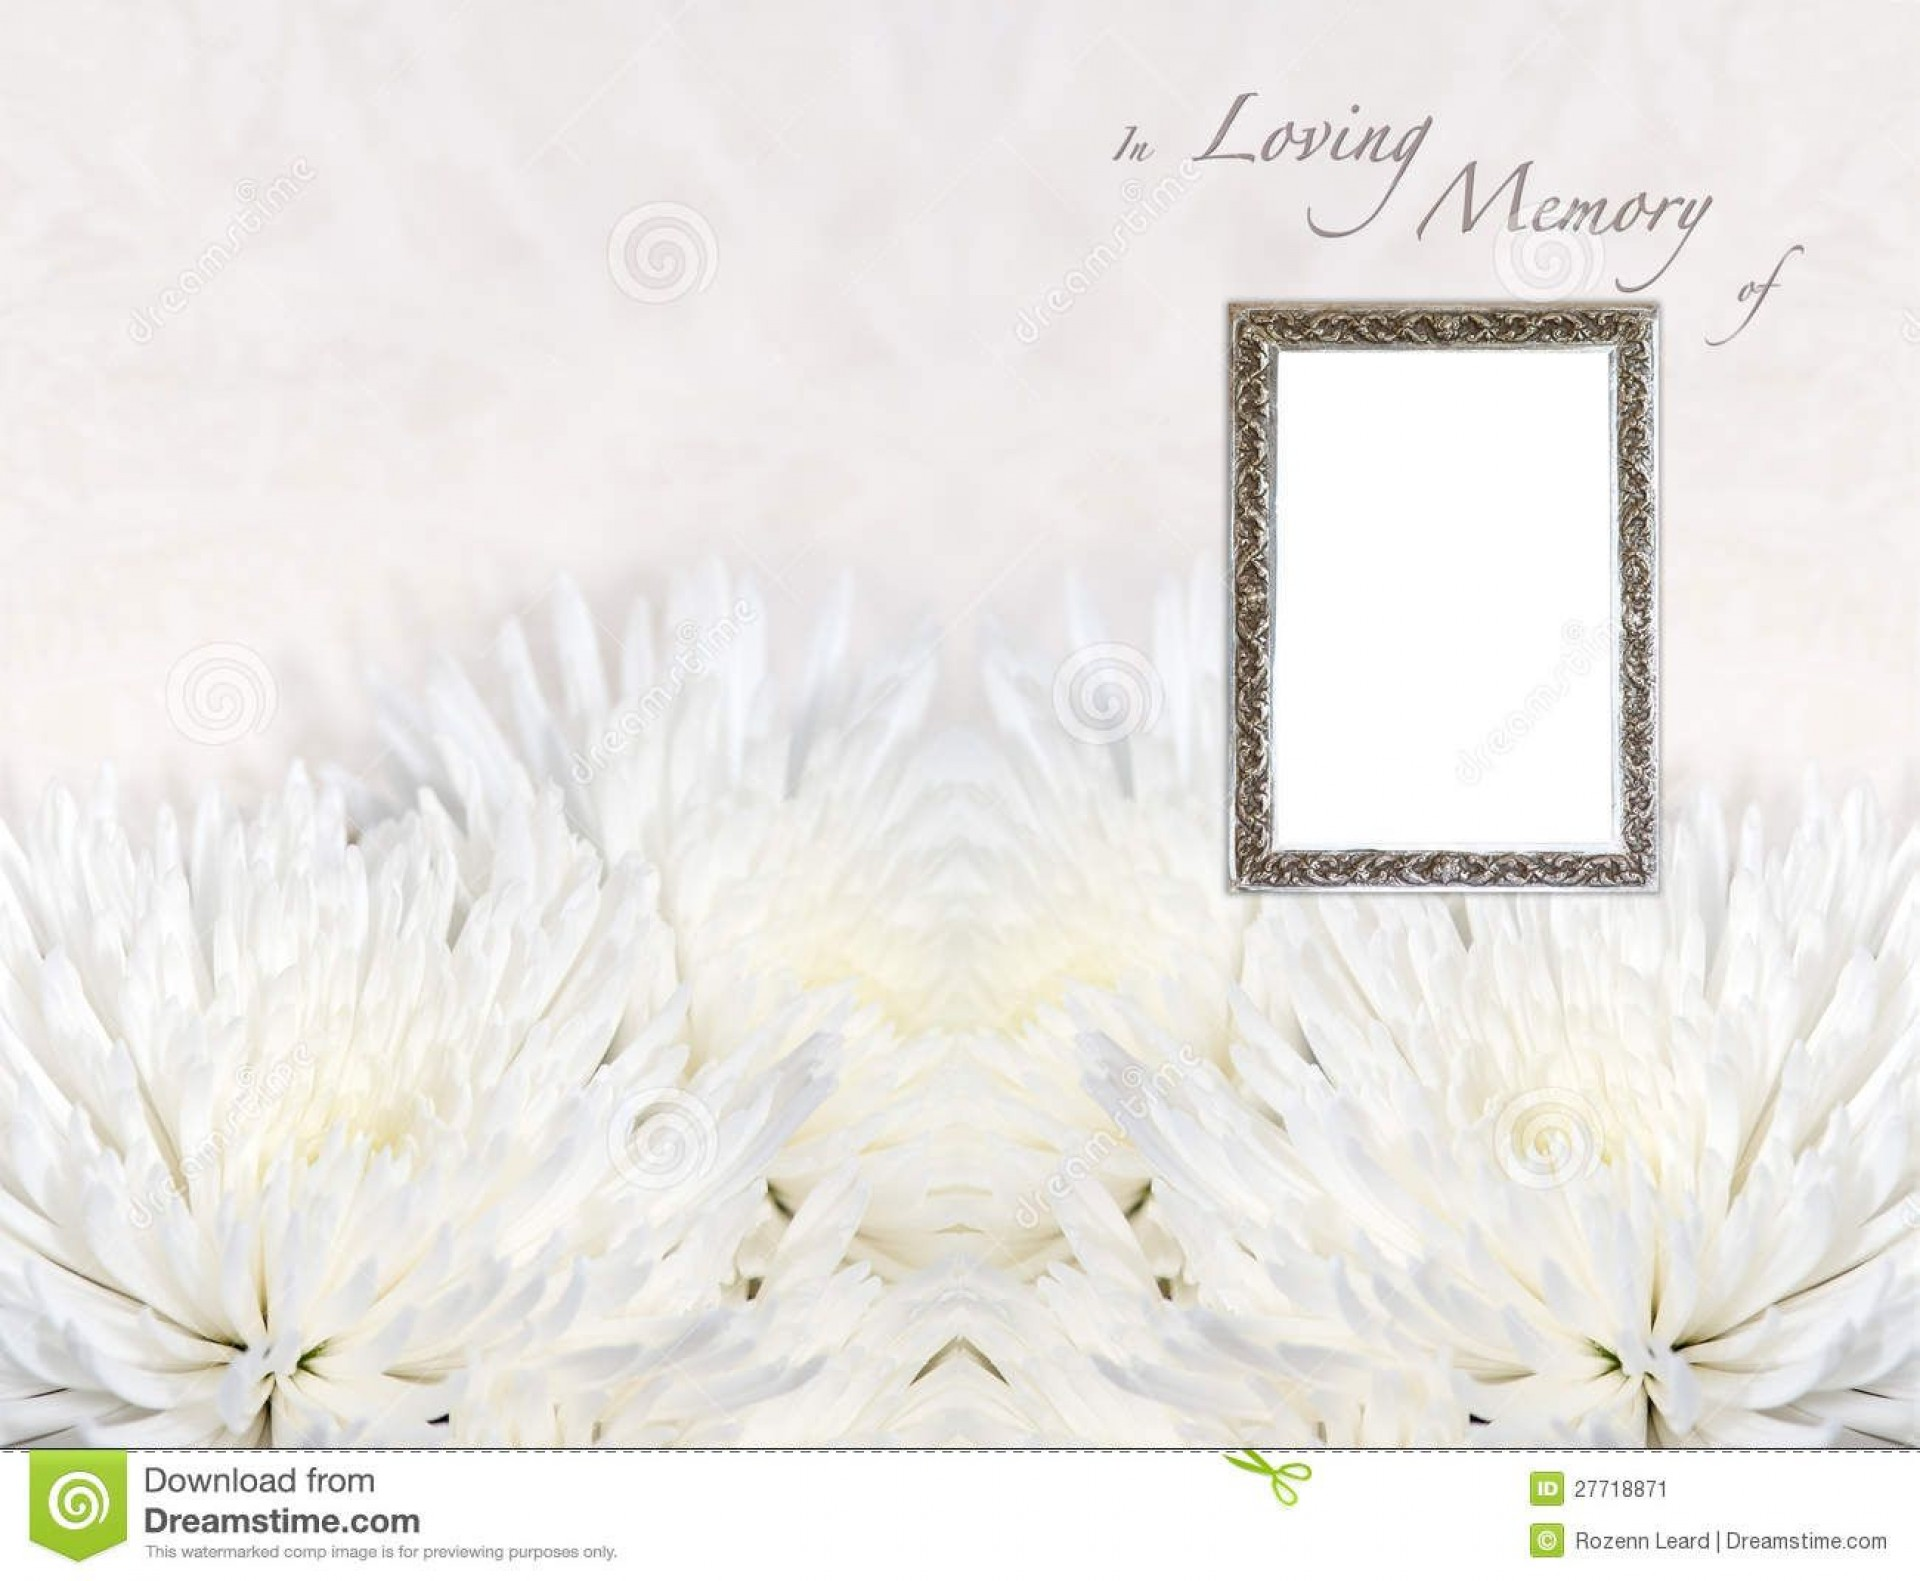 005 Rare In Loving Memory Powerpoint Template Free High Definition 1920